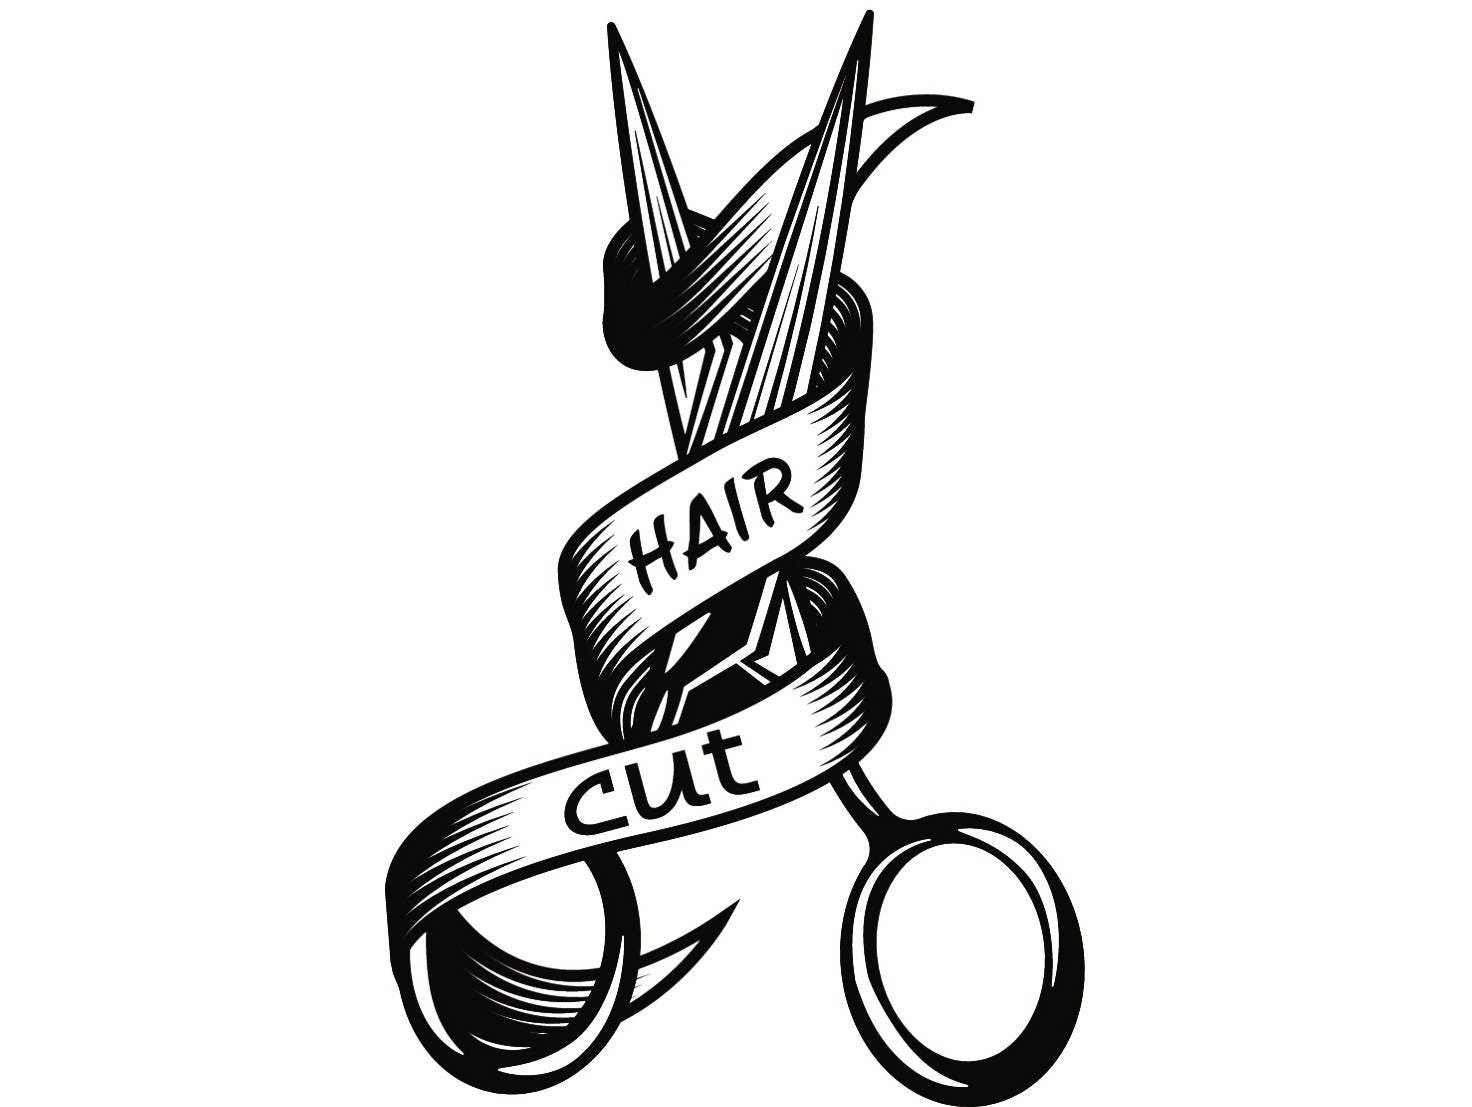 hairstylist logo 3 scissors salon barber shop haircut groom clipart images groom clipart indian